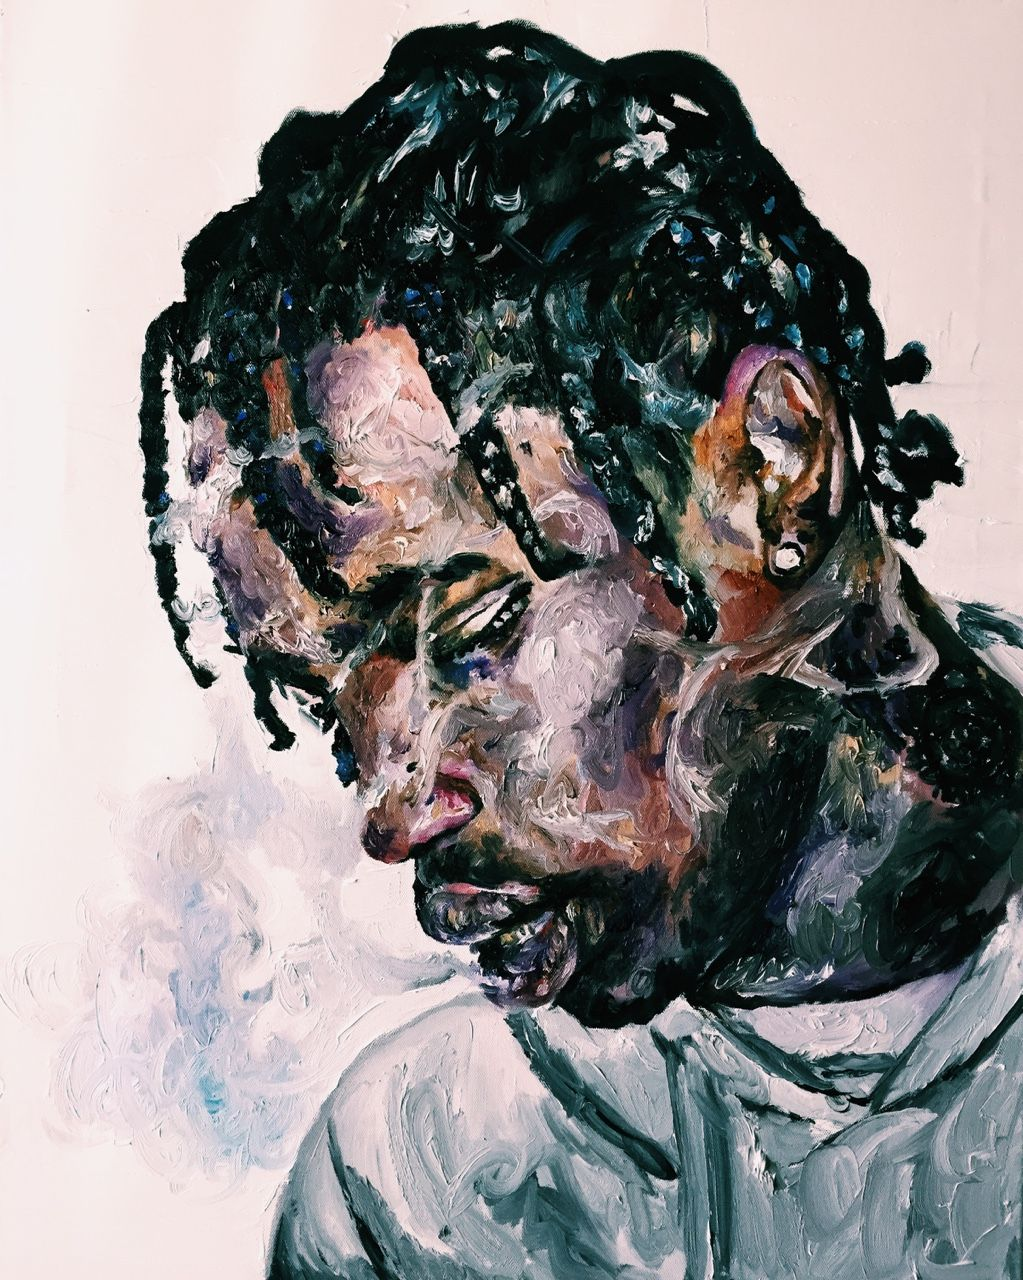 0911b36015d1 mariella-angela: Travi$ Scott | Oil on Canvas | 24x30 | room ideas ...